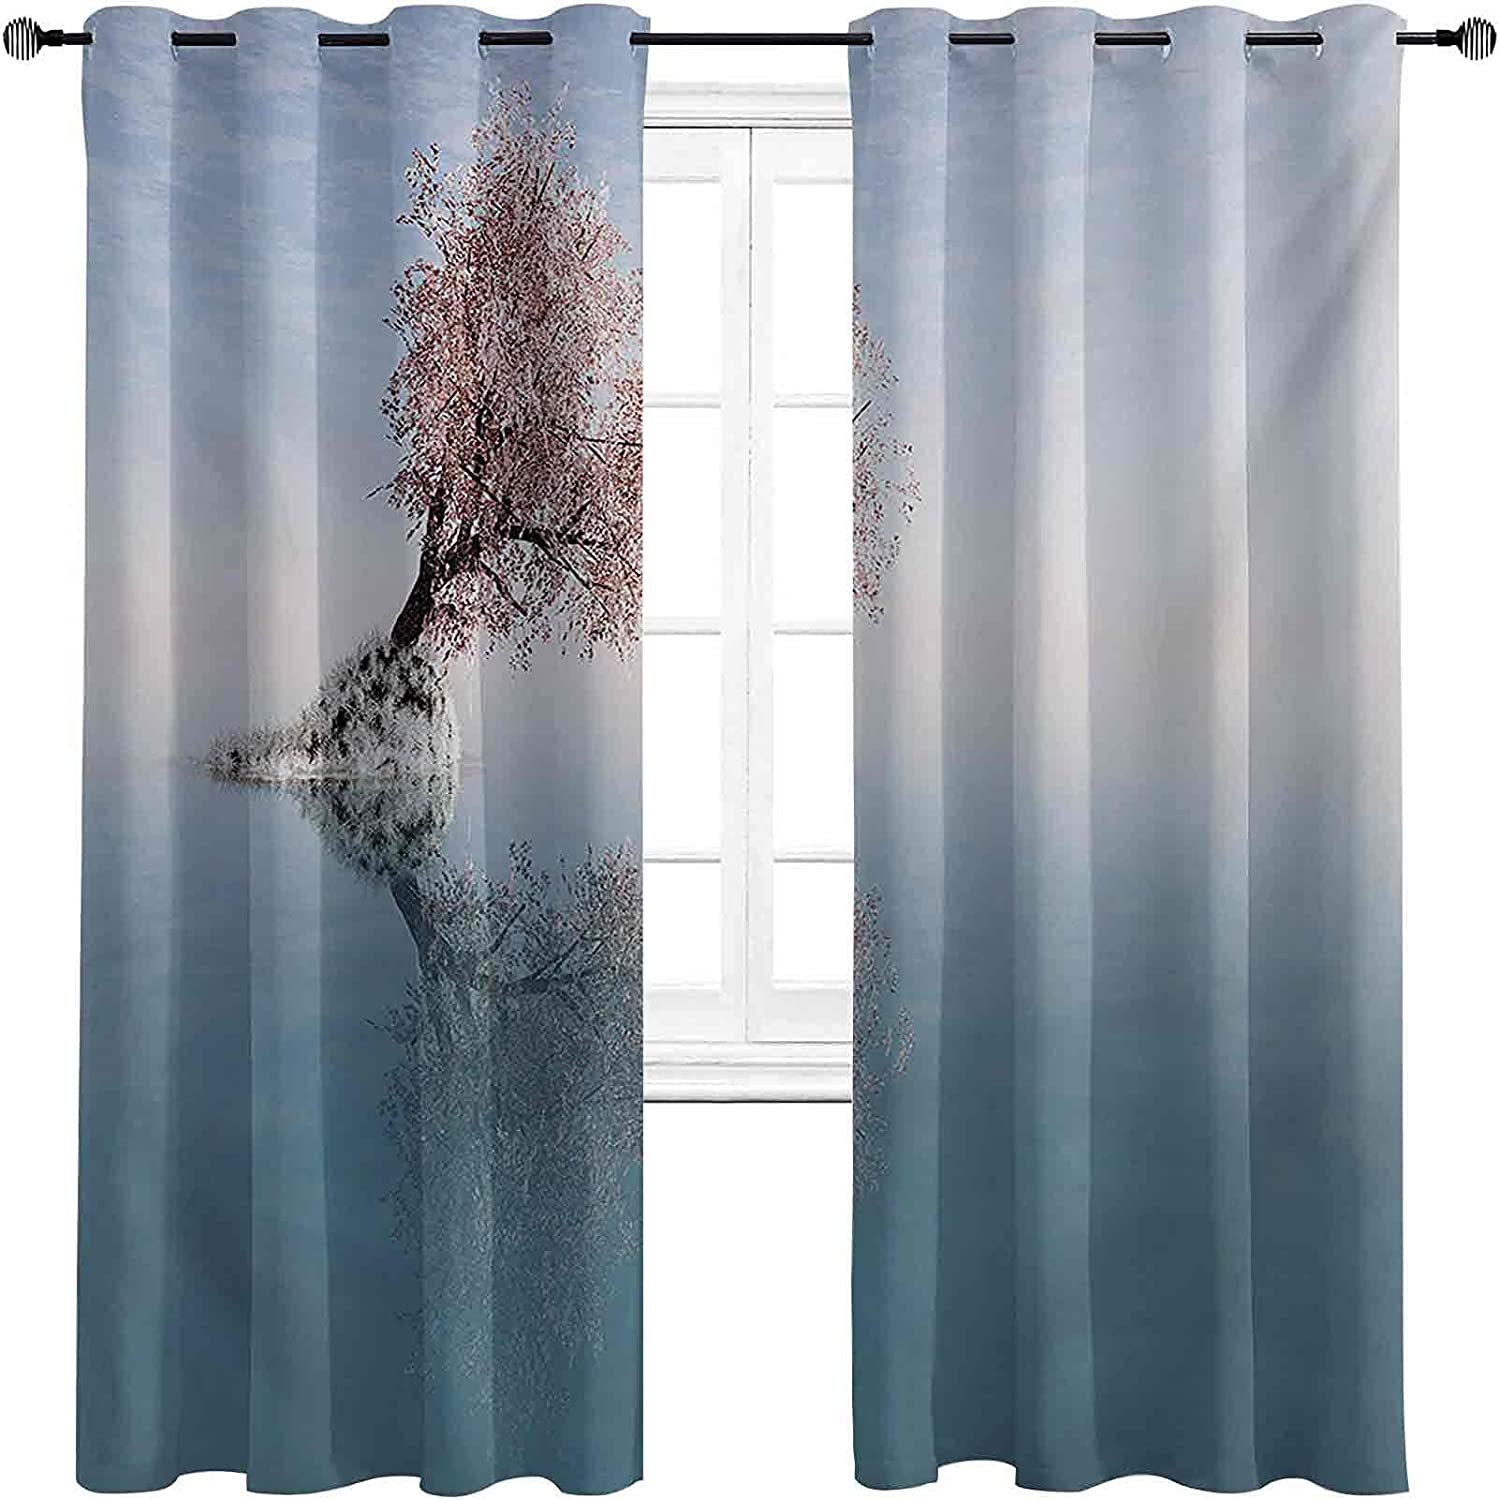 Tree Blackout Curtains with Grommets Be Don't miss the campaign super welcome A darken Flower Th in